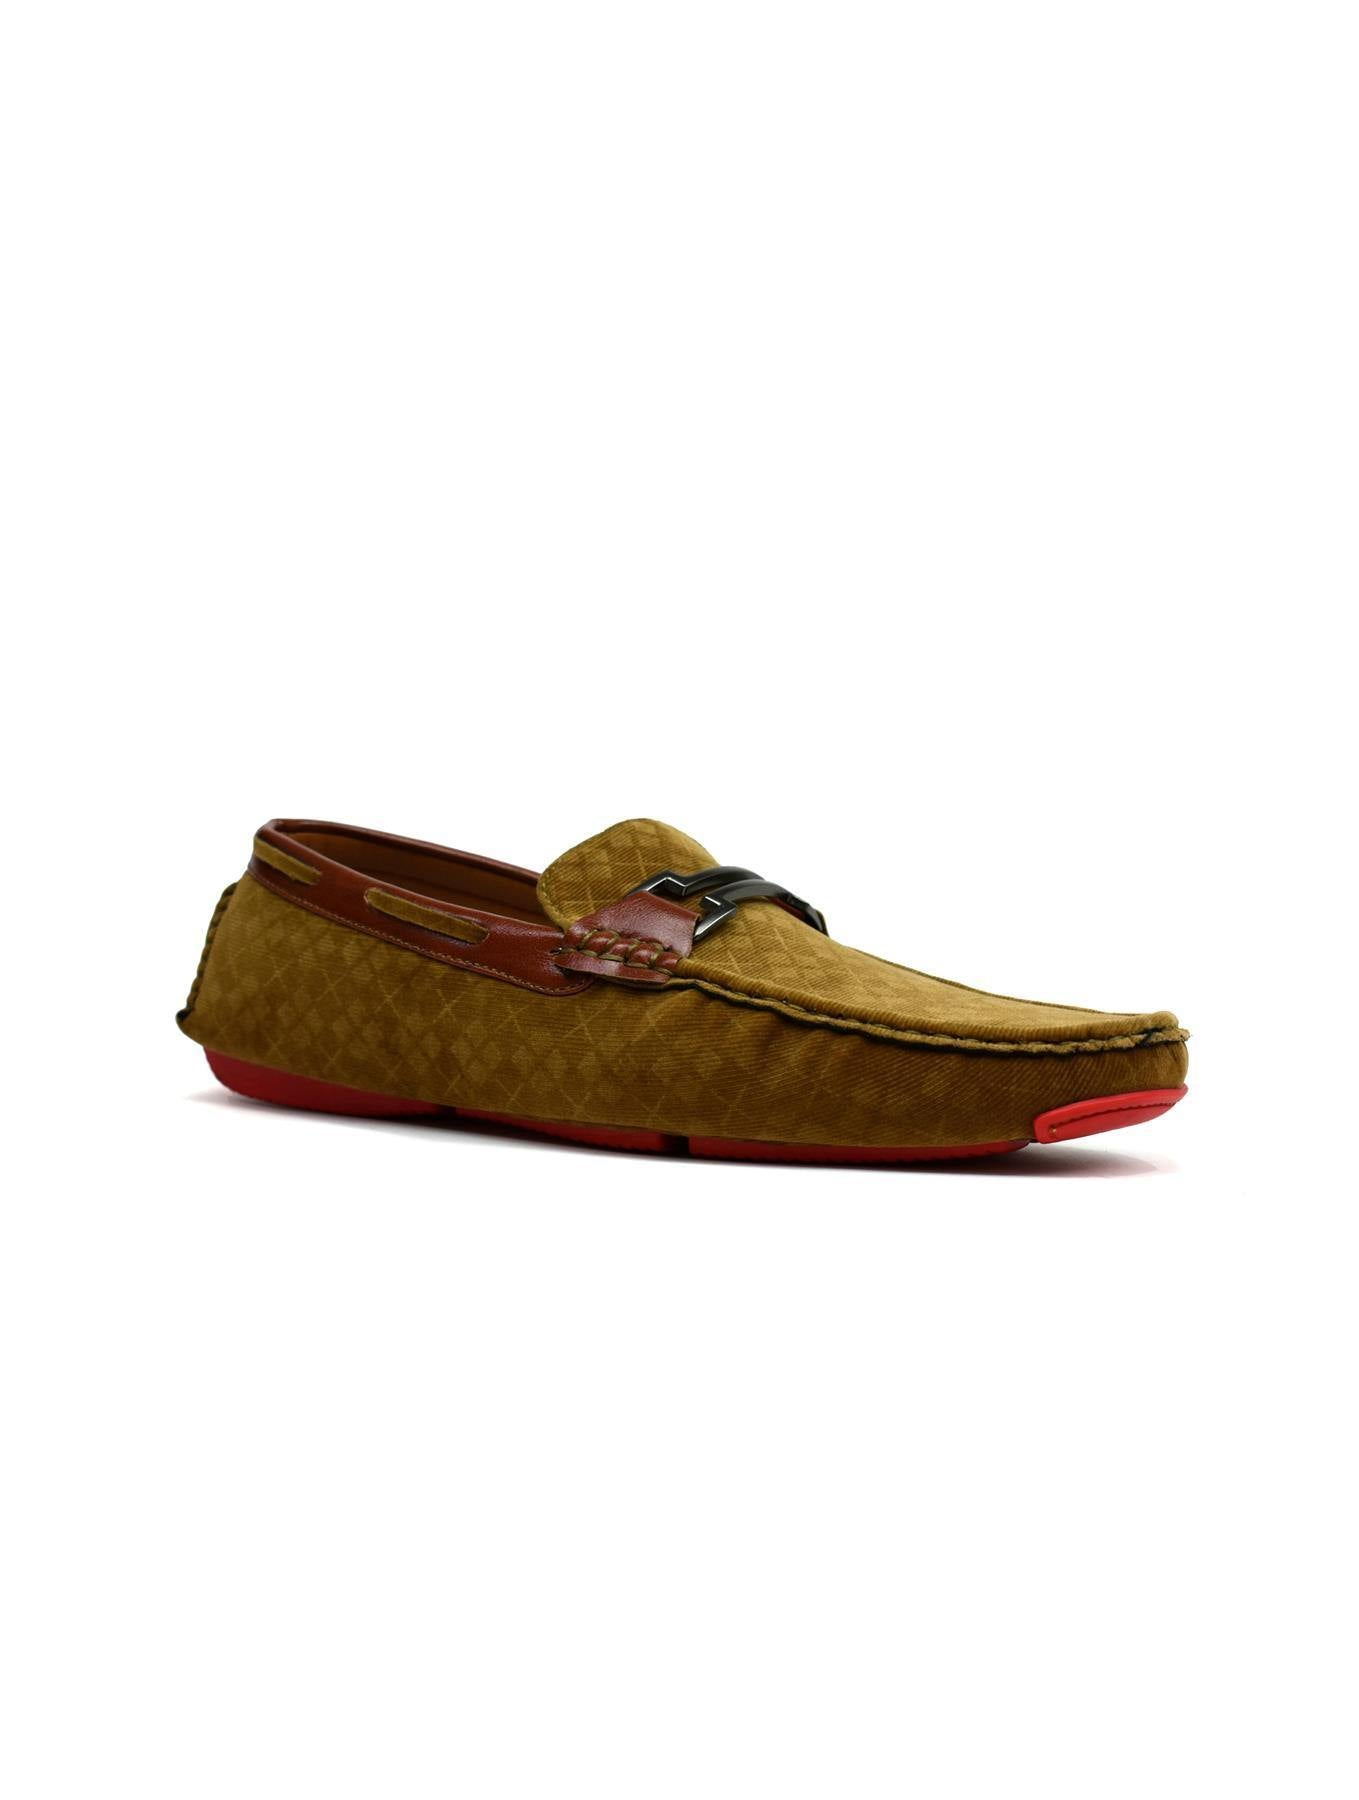 Unique Faux Suede Loafer Tan - DadiTude